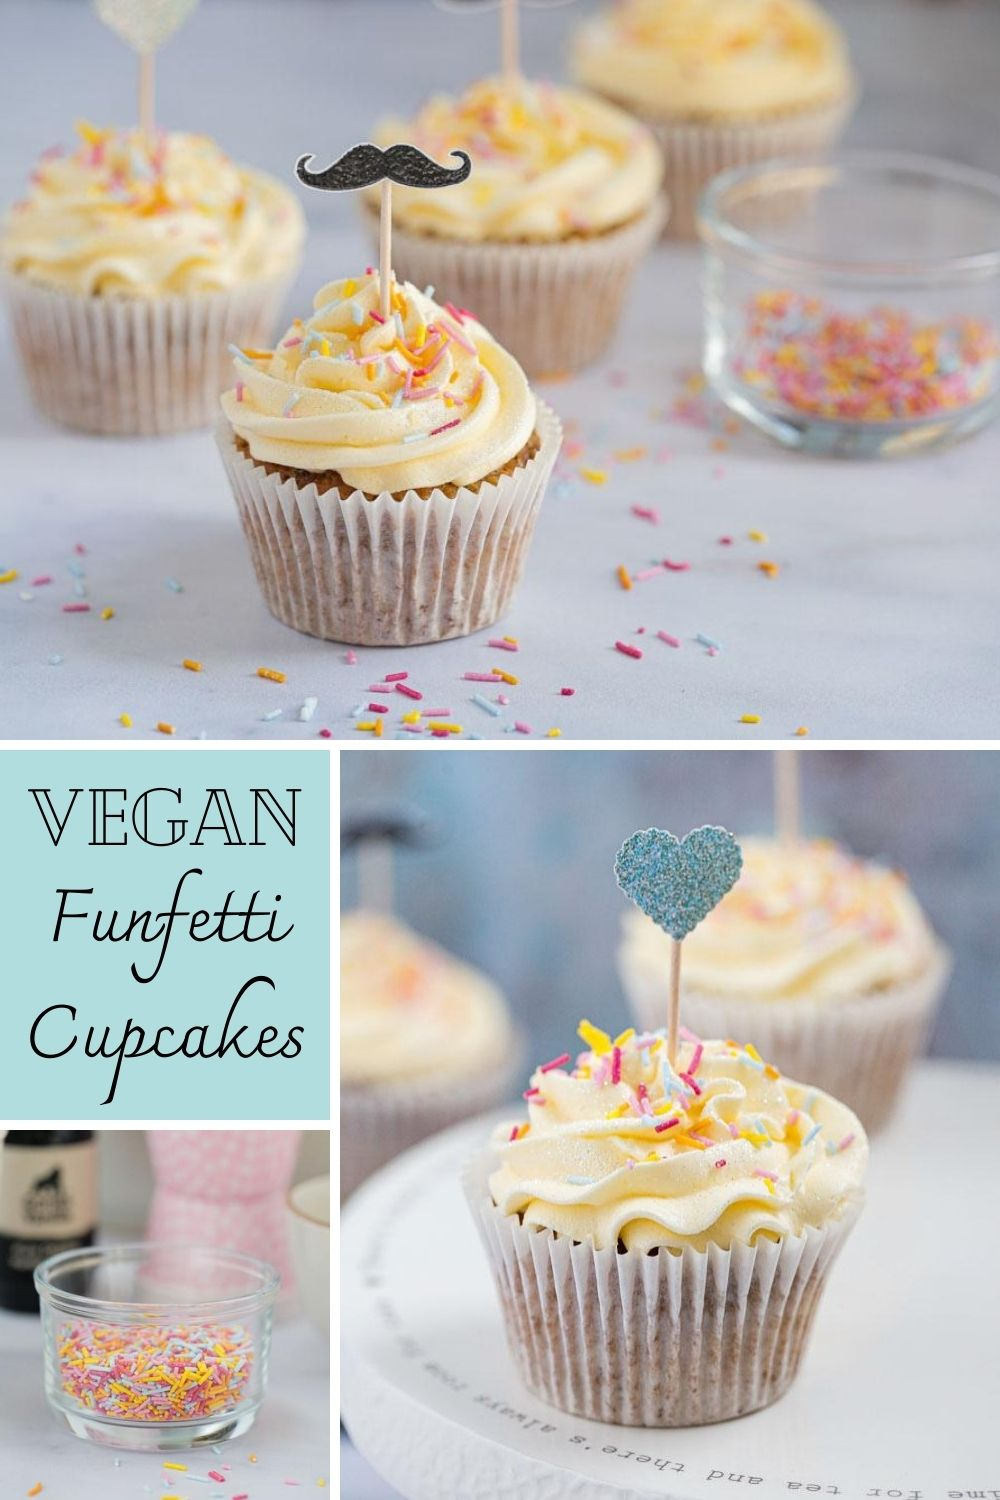 Sweet vegan funfetti cupcakes filled with colourful sprinkles and vanilla flavour, topped with a light fluffy vegan buttercream frosting! #funfetti #funfetticupcakes #vegancupcakes #veganrecipes #veganbaking #dairyfree #eggfree | Recipe on thecookandhim.com